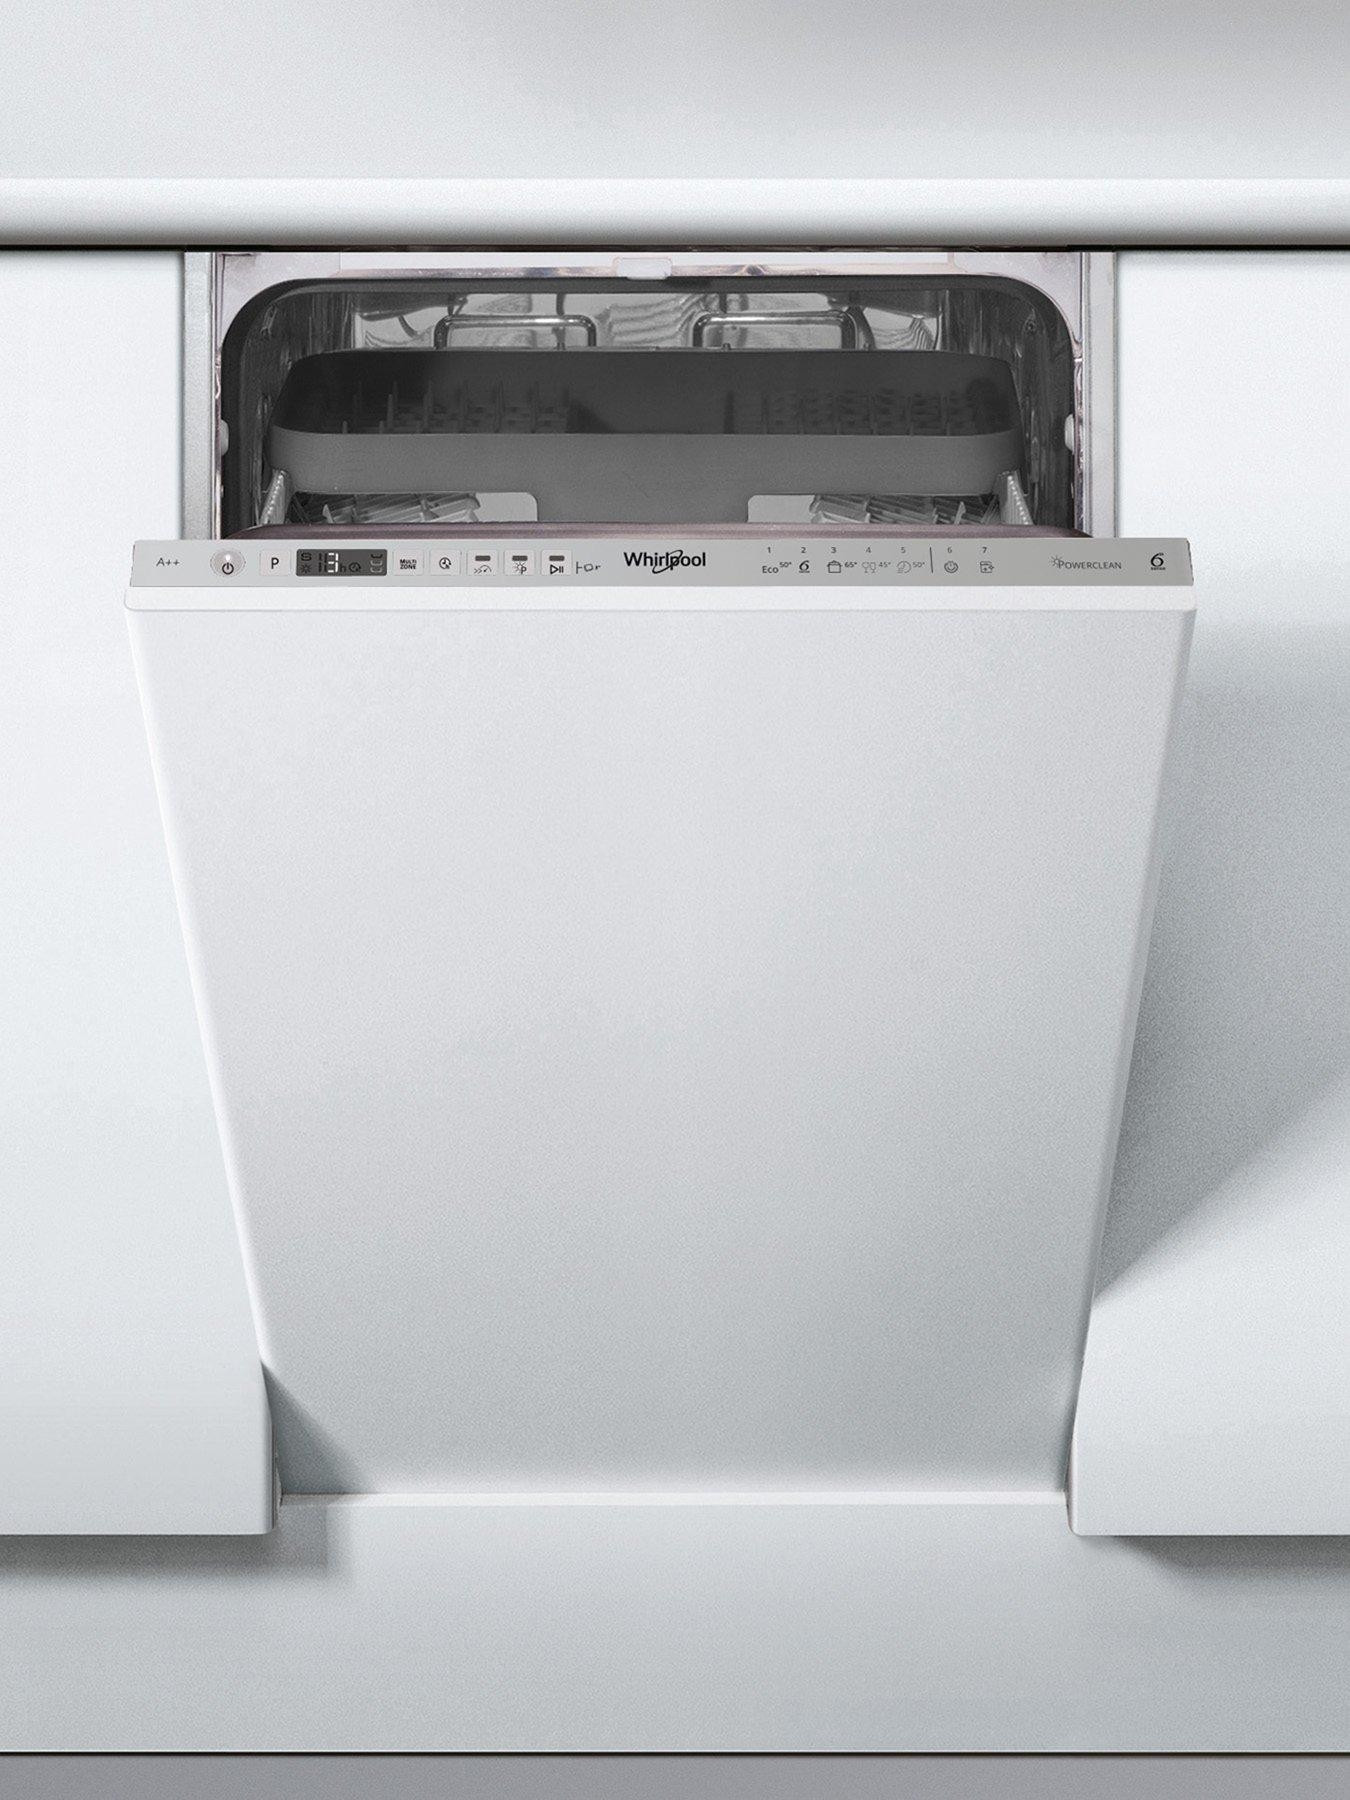 Whirlpool WSIO3T223PCEX WSIO3T223P 10 Place Slimline Fully Integrated Dishwasher